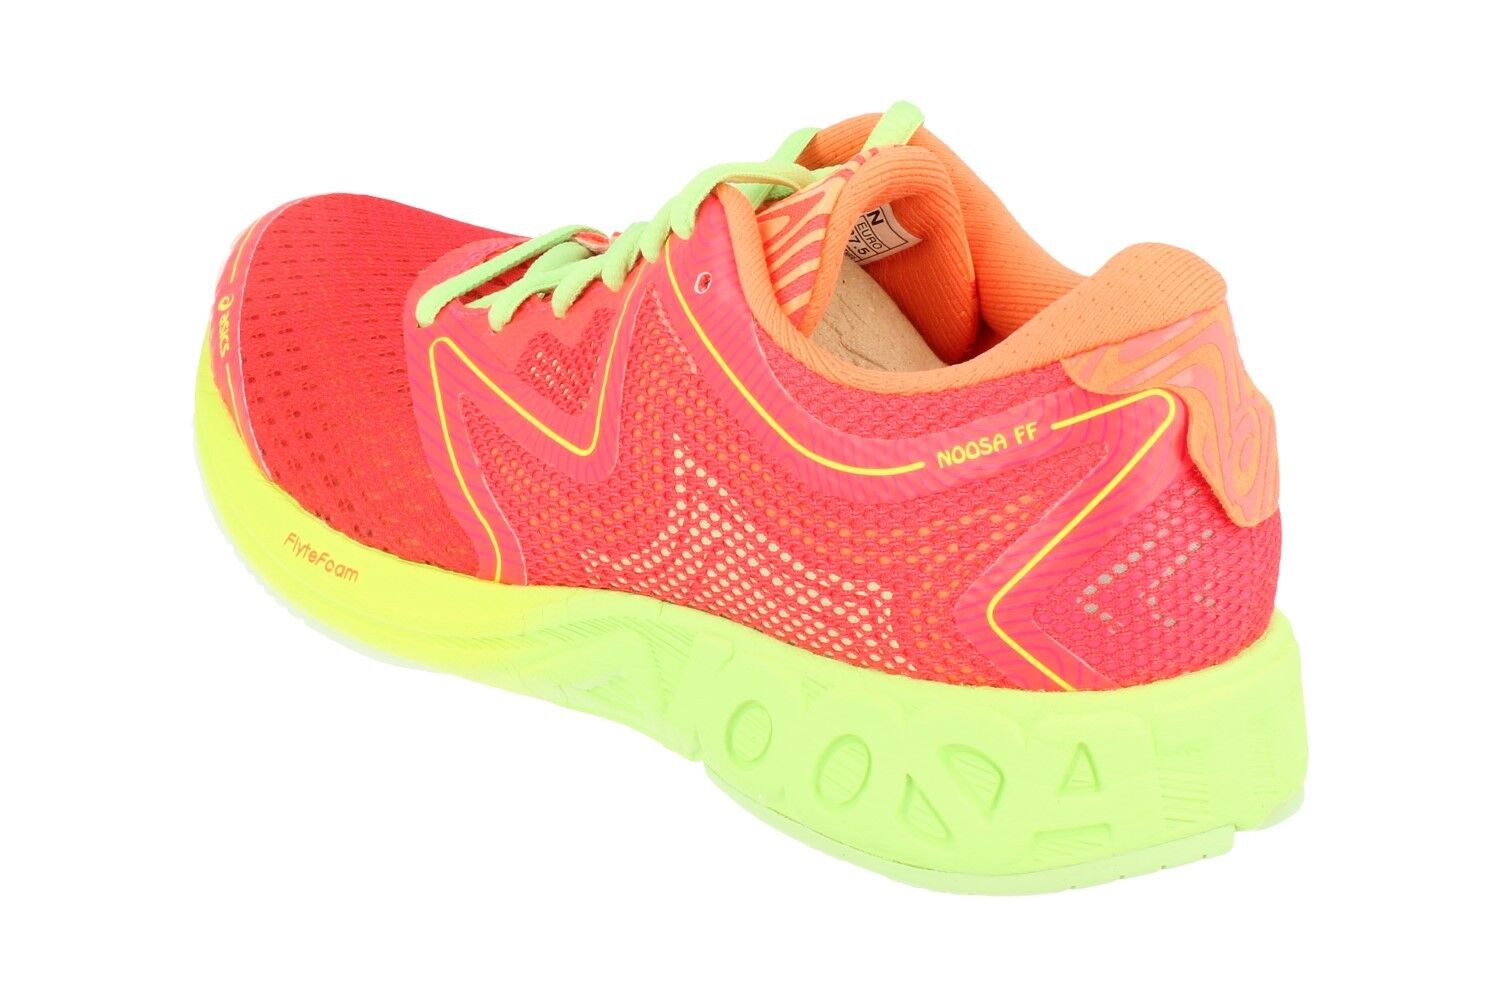 Asics Noosa Ff Sneakers Womens Running Trainers T772N Sneakers Ff Shoes 2087 ee05c3